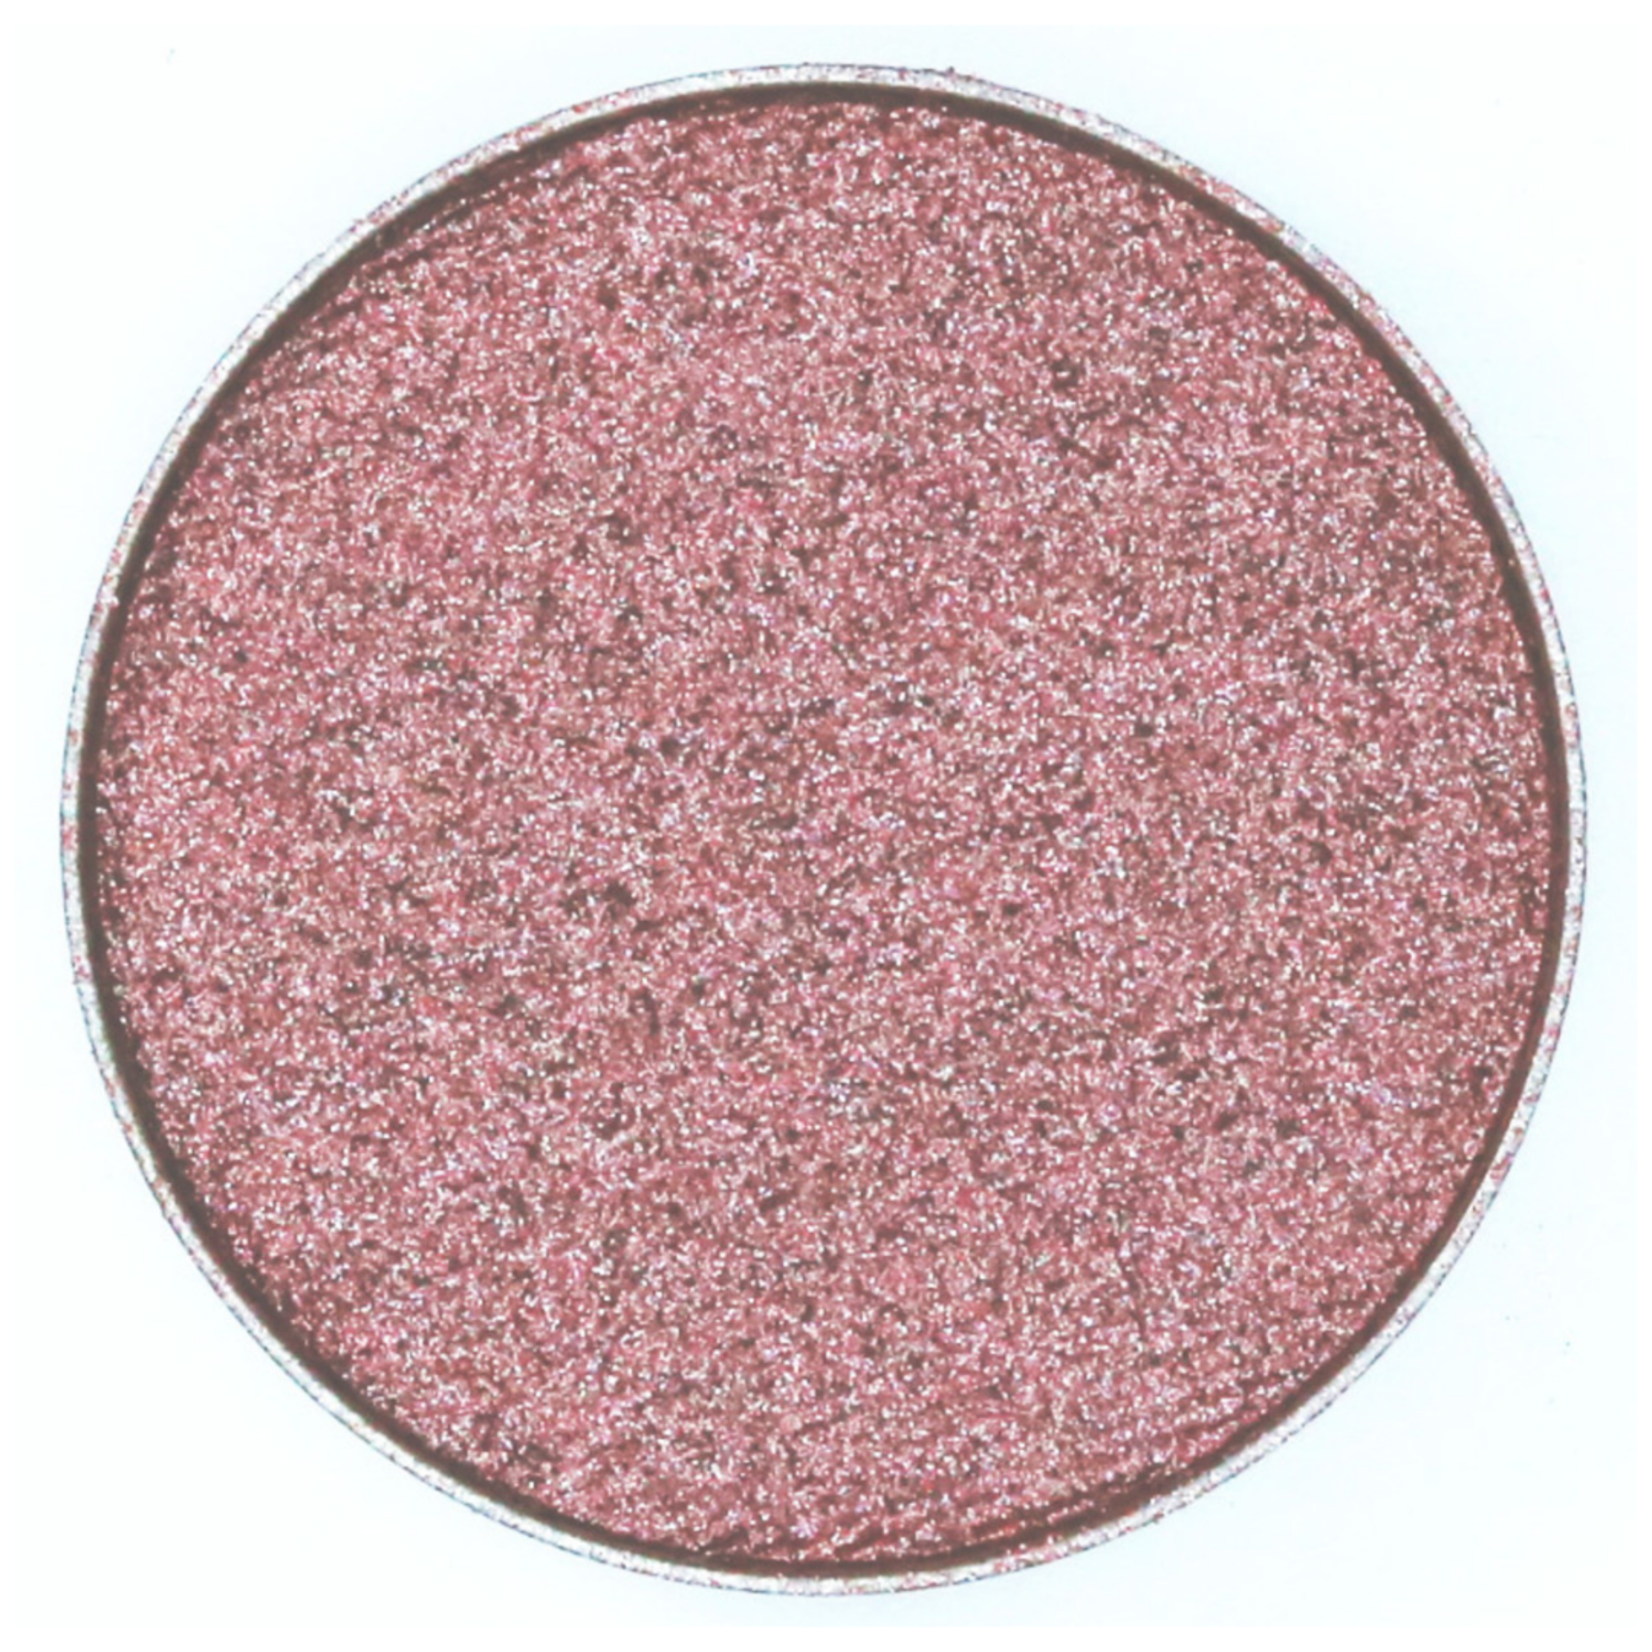 JKC EYESHADOW - Rose Colored Glasses